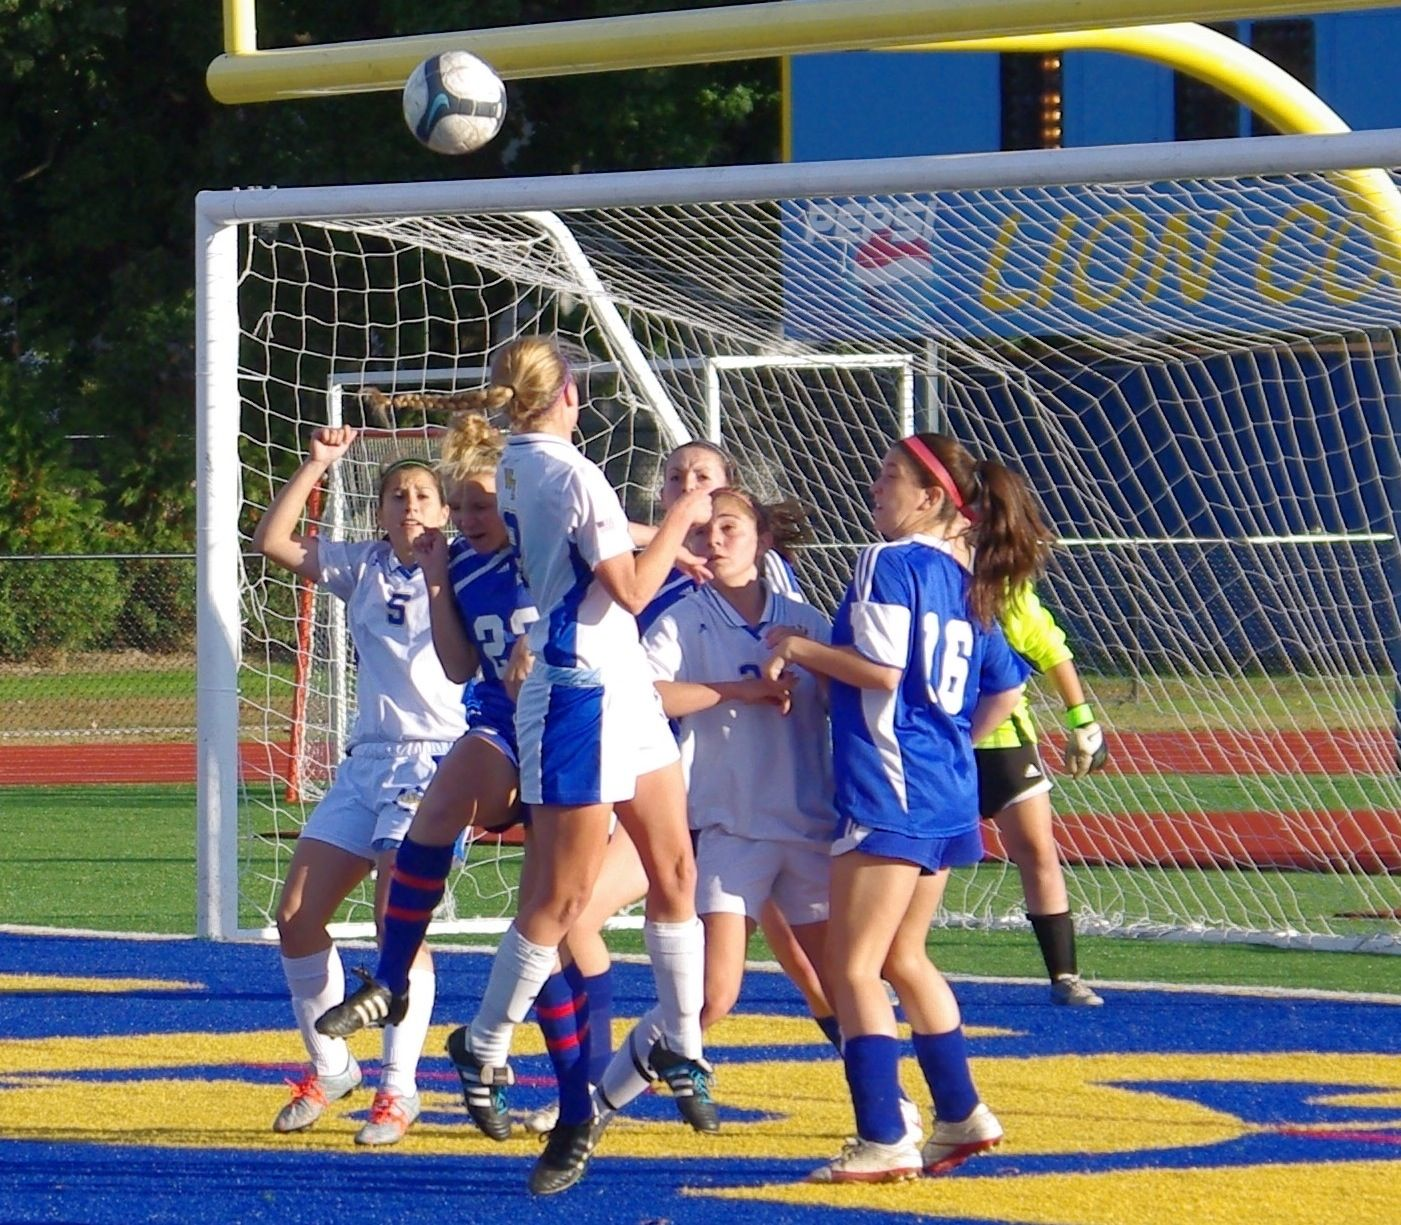 West Islip kept the pressure on throughout their 40 win